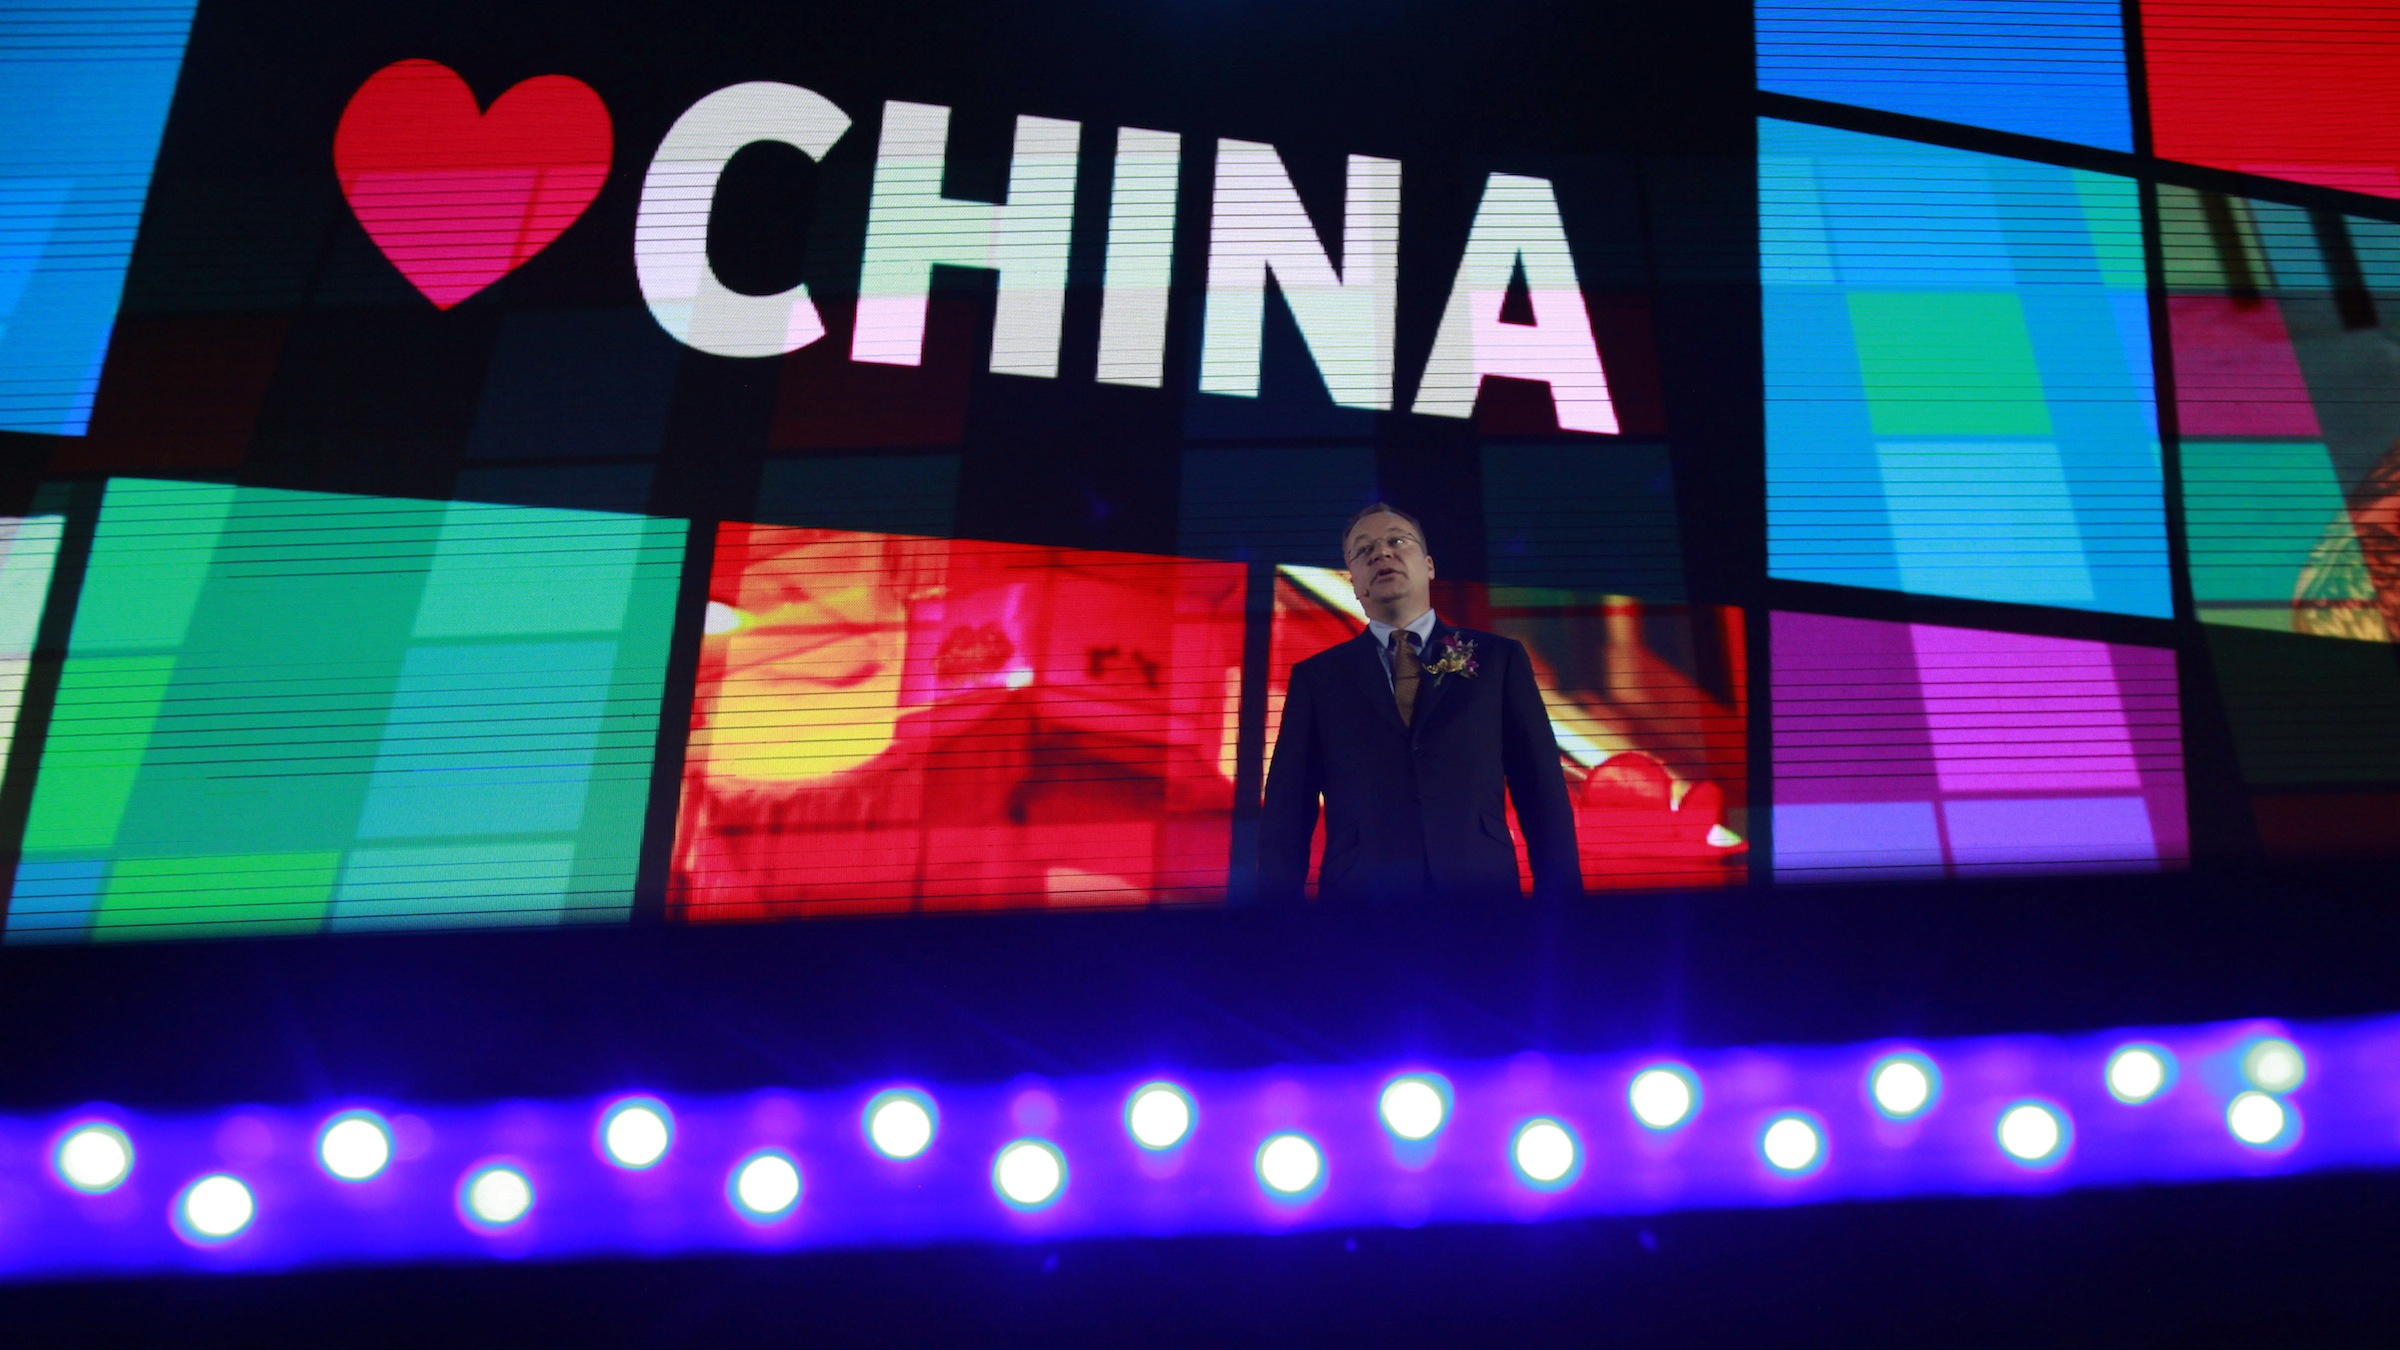 Nokia CEO in China